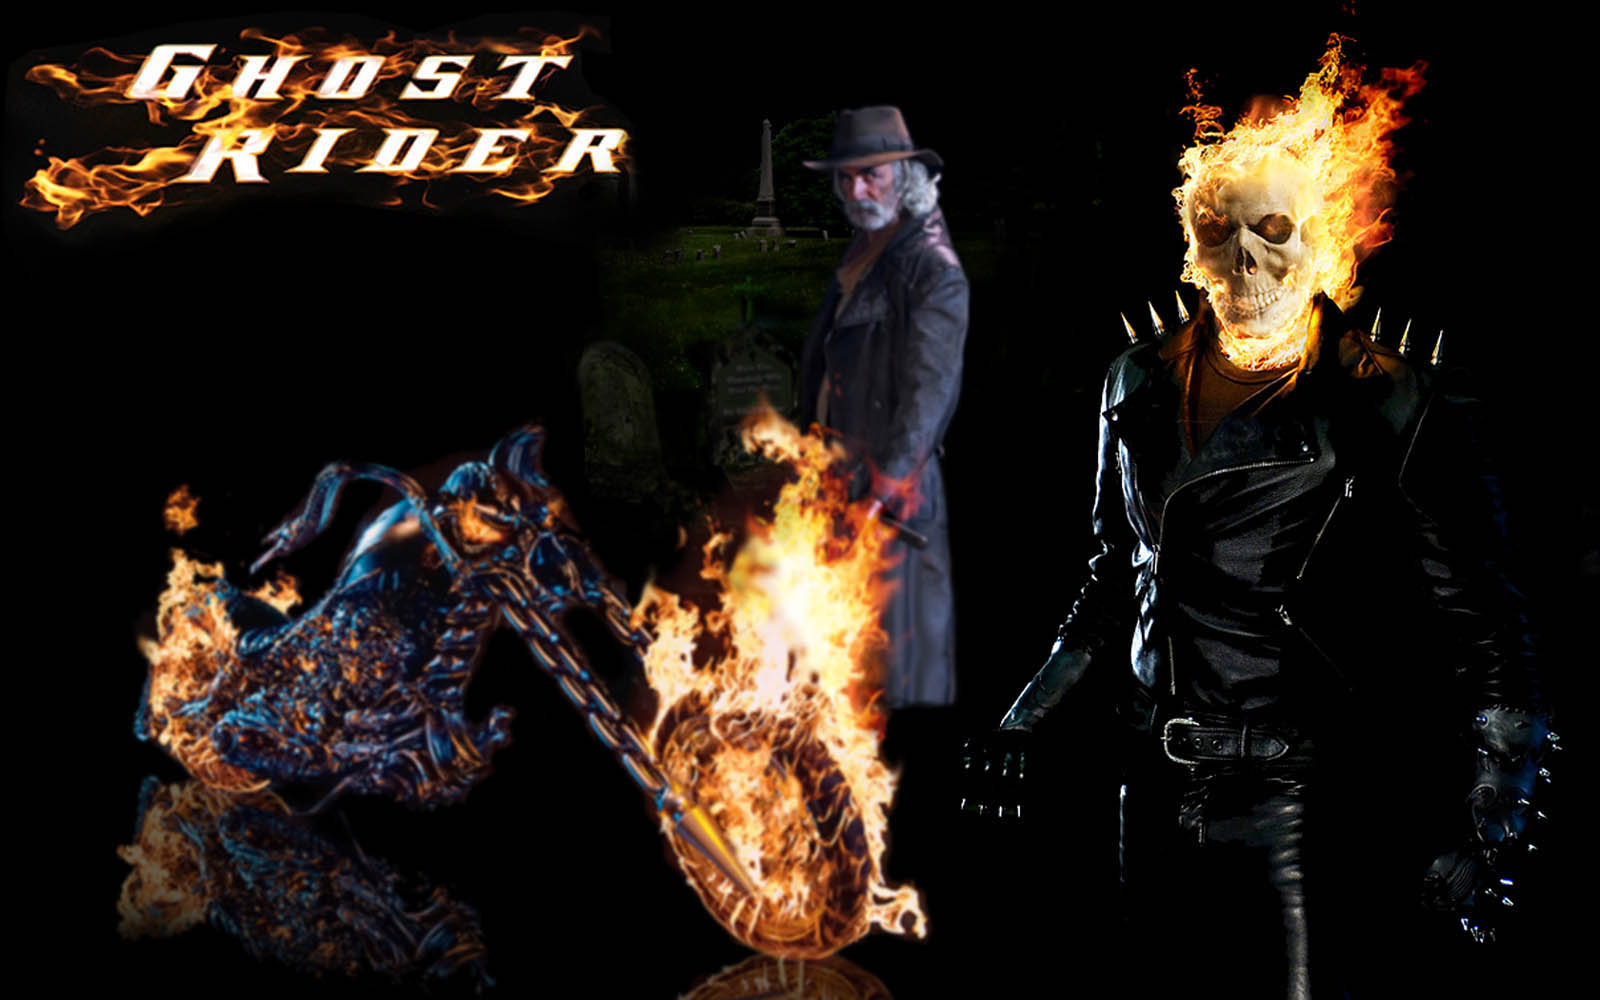 Tag Ghost Rider Wallpapers Images Paos Pictures and Backgrounds 1600x1000